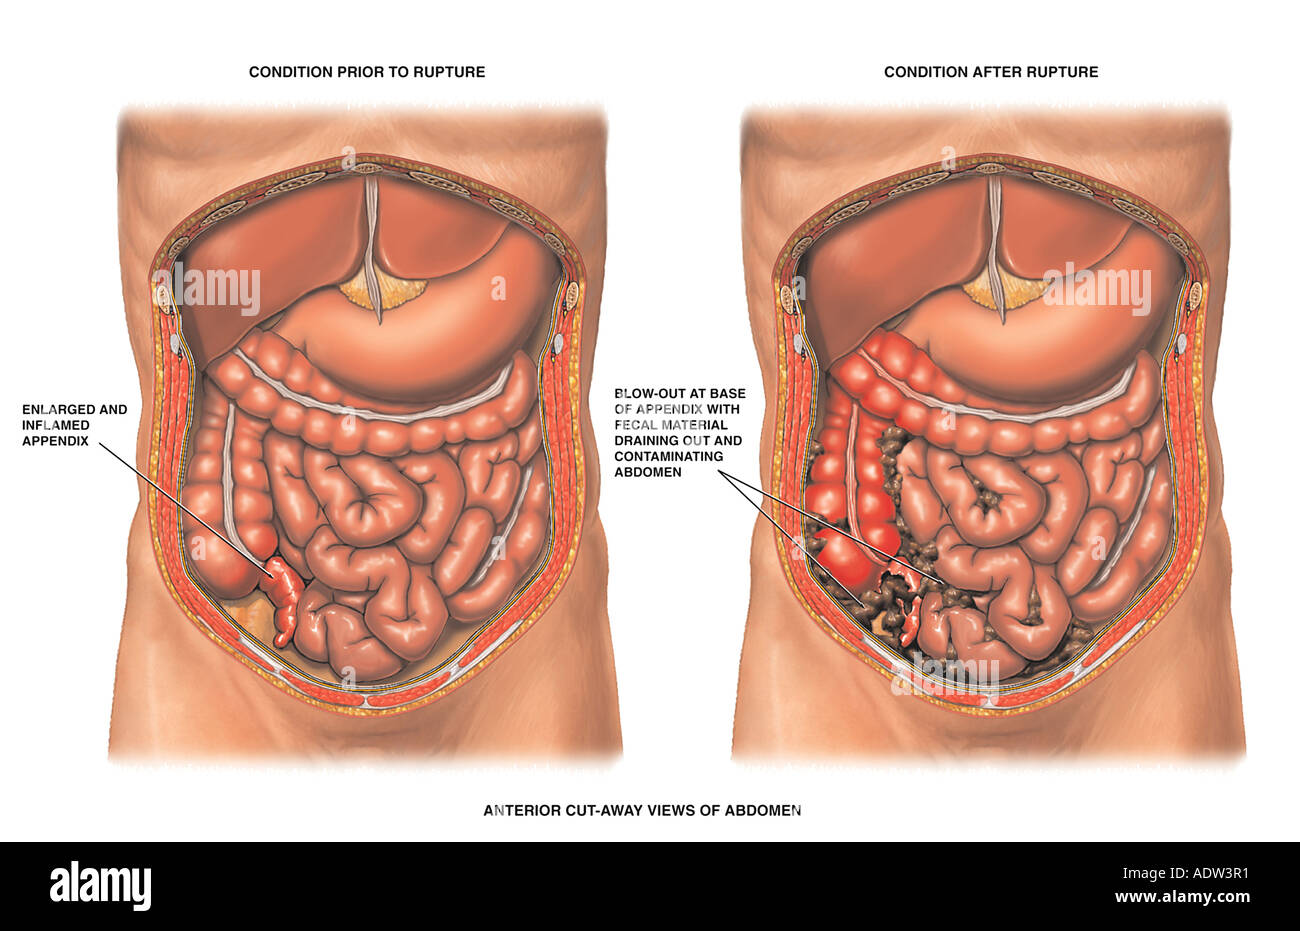 hight resolution of acute appendicitis with ruptured appendix stock image